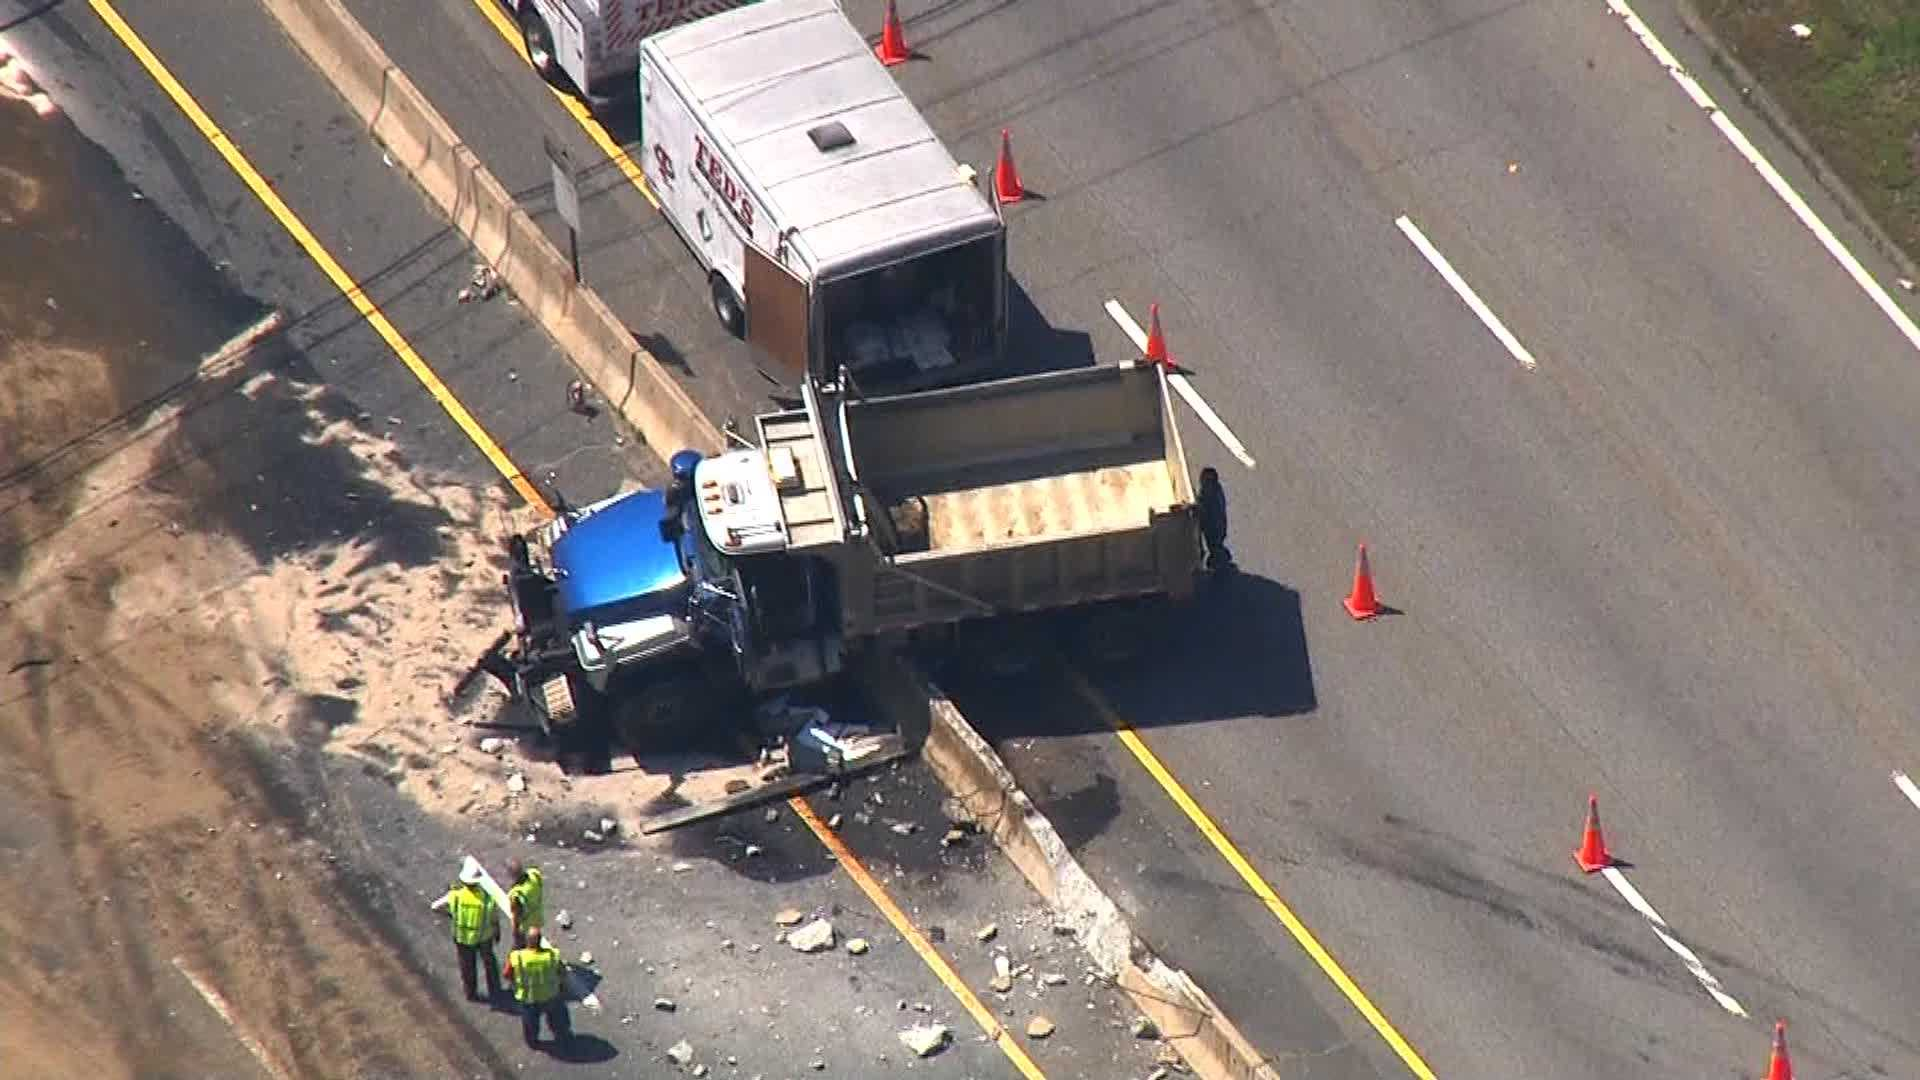 Sky 5 showed the truck sitting on the center median wall on Route 9 in Westborough.